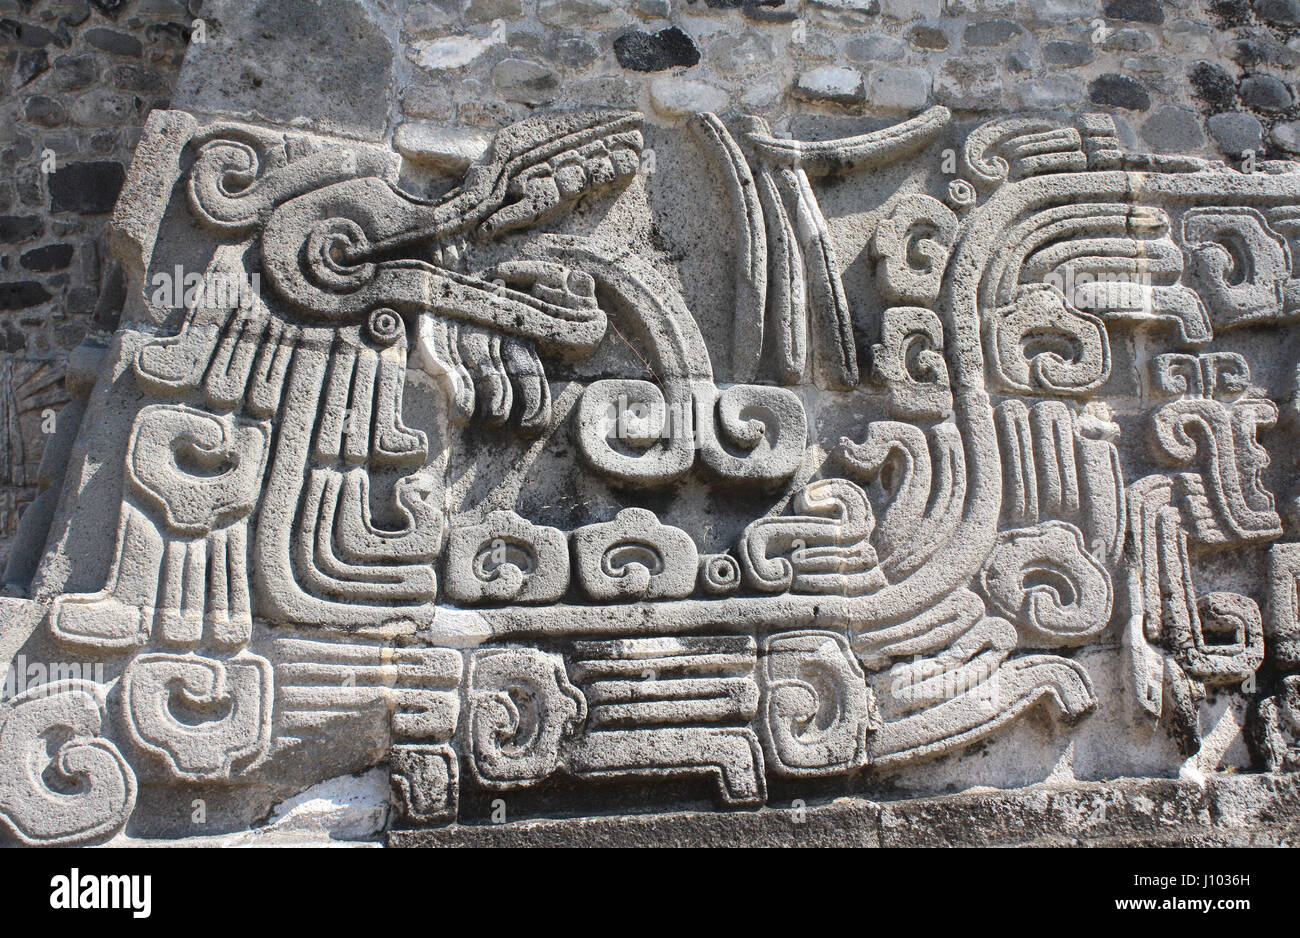 Bas relief carving with of a quetzalcoatl pre columbian